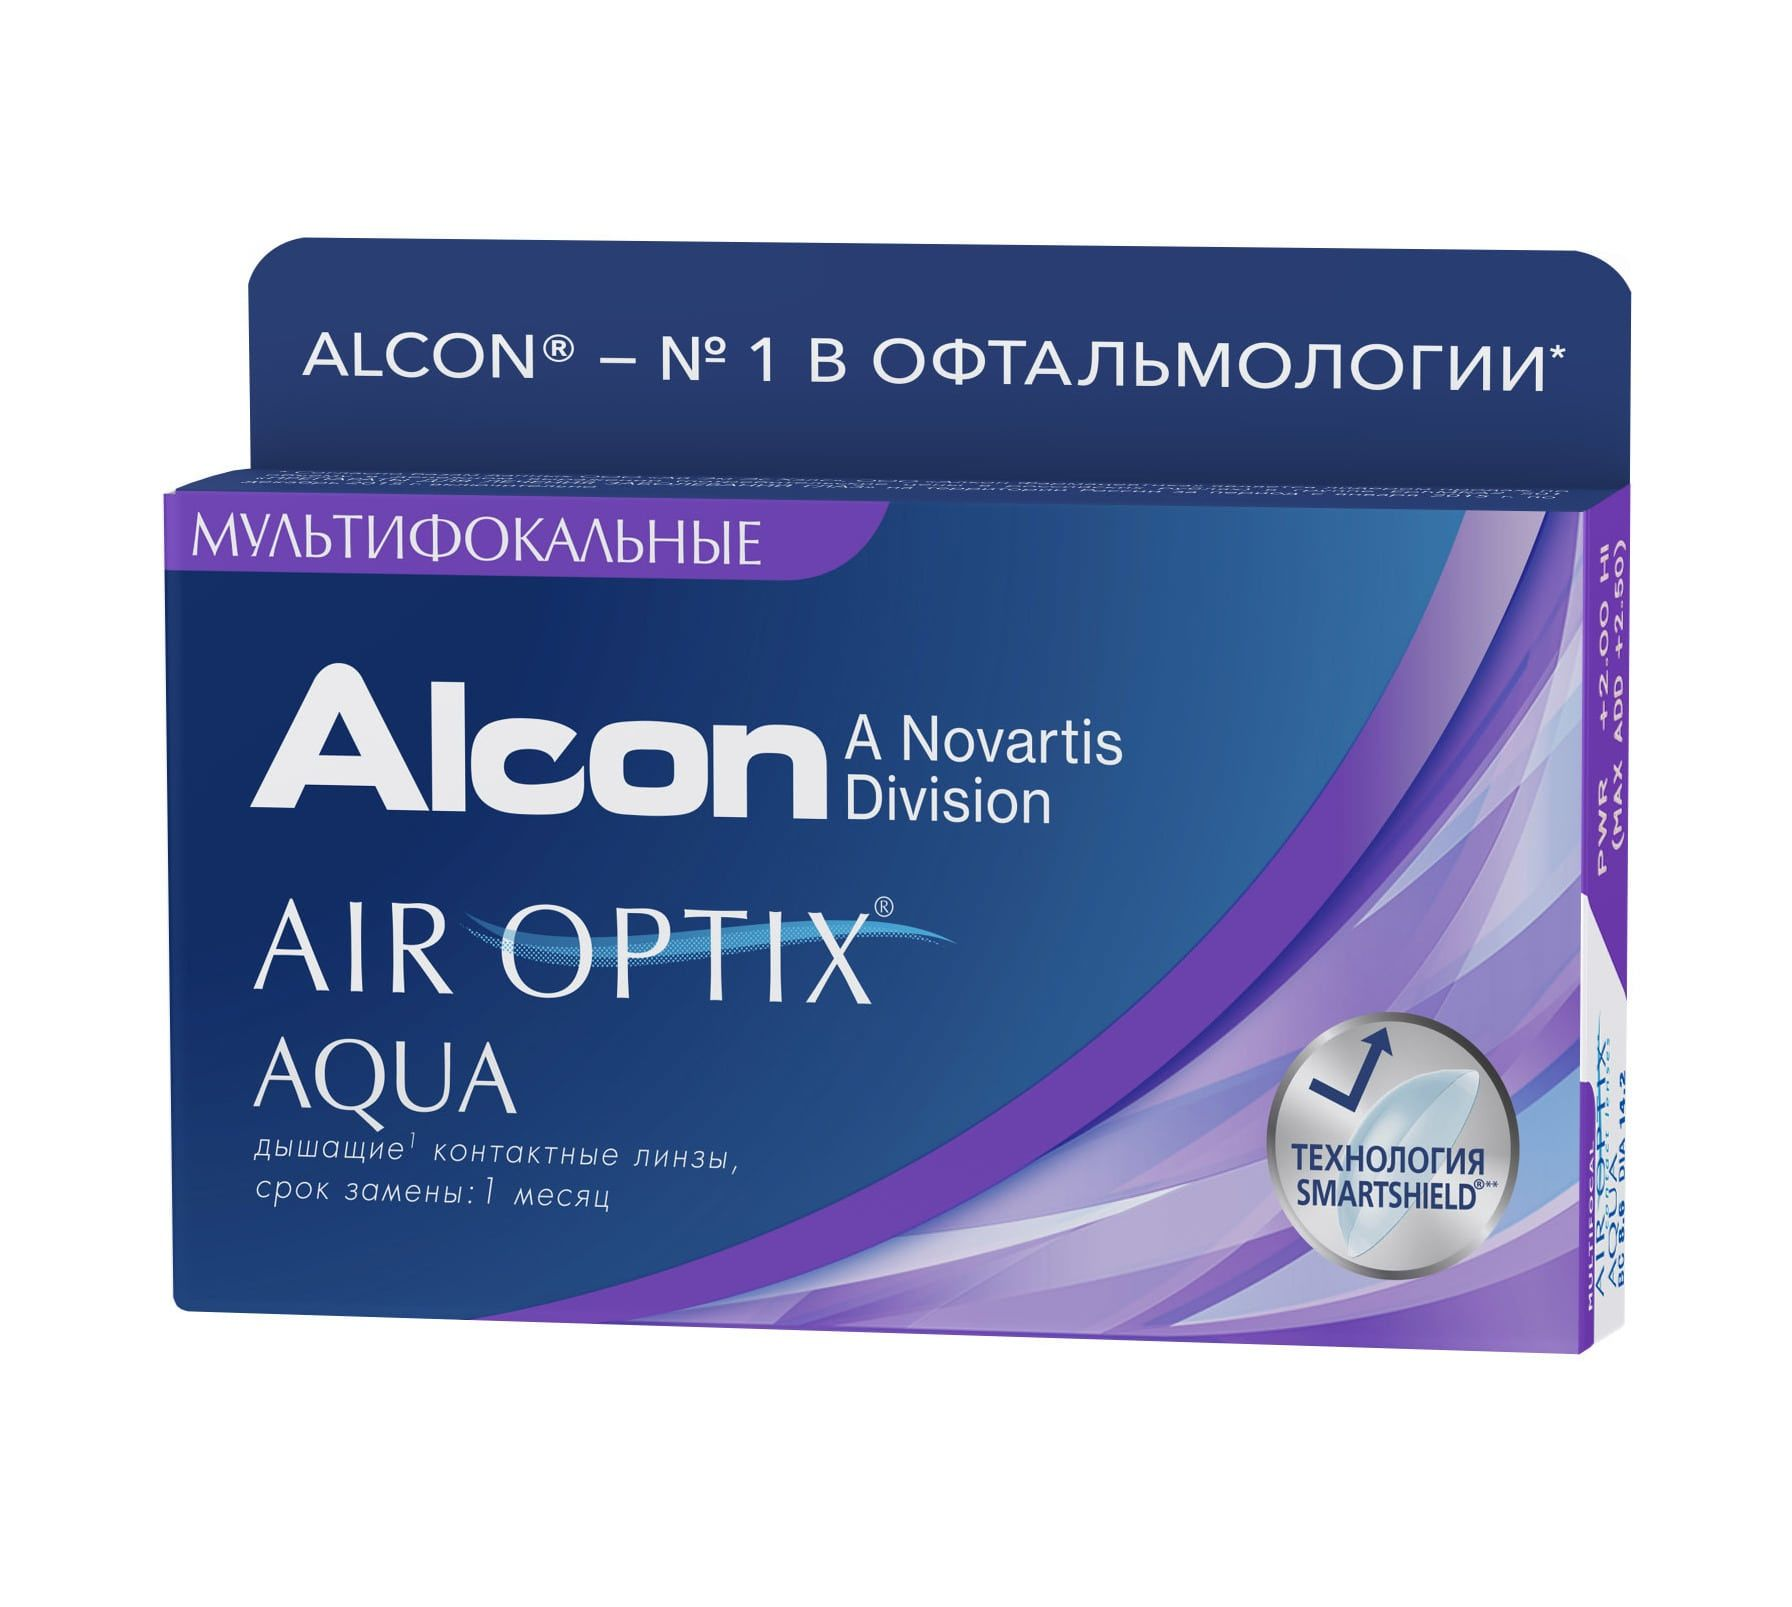 Контактные линзы AIR OPTIX AQUA Multifocal (3 линзы)  фото